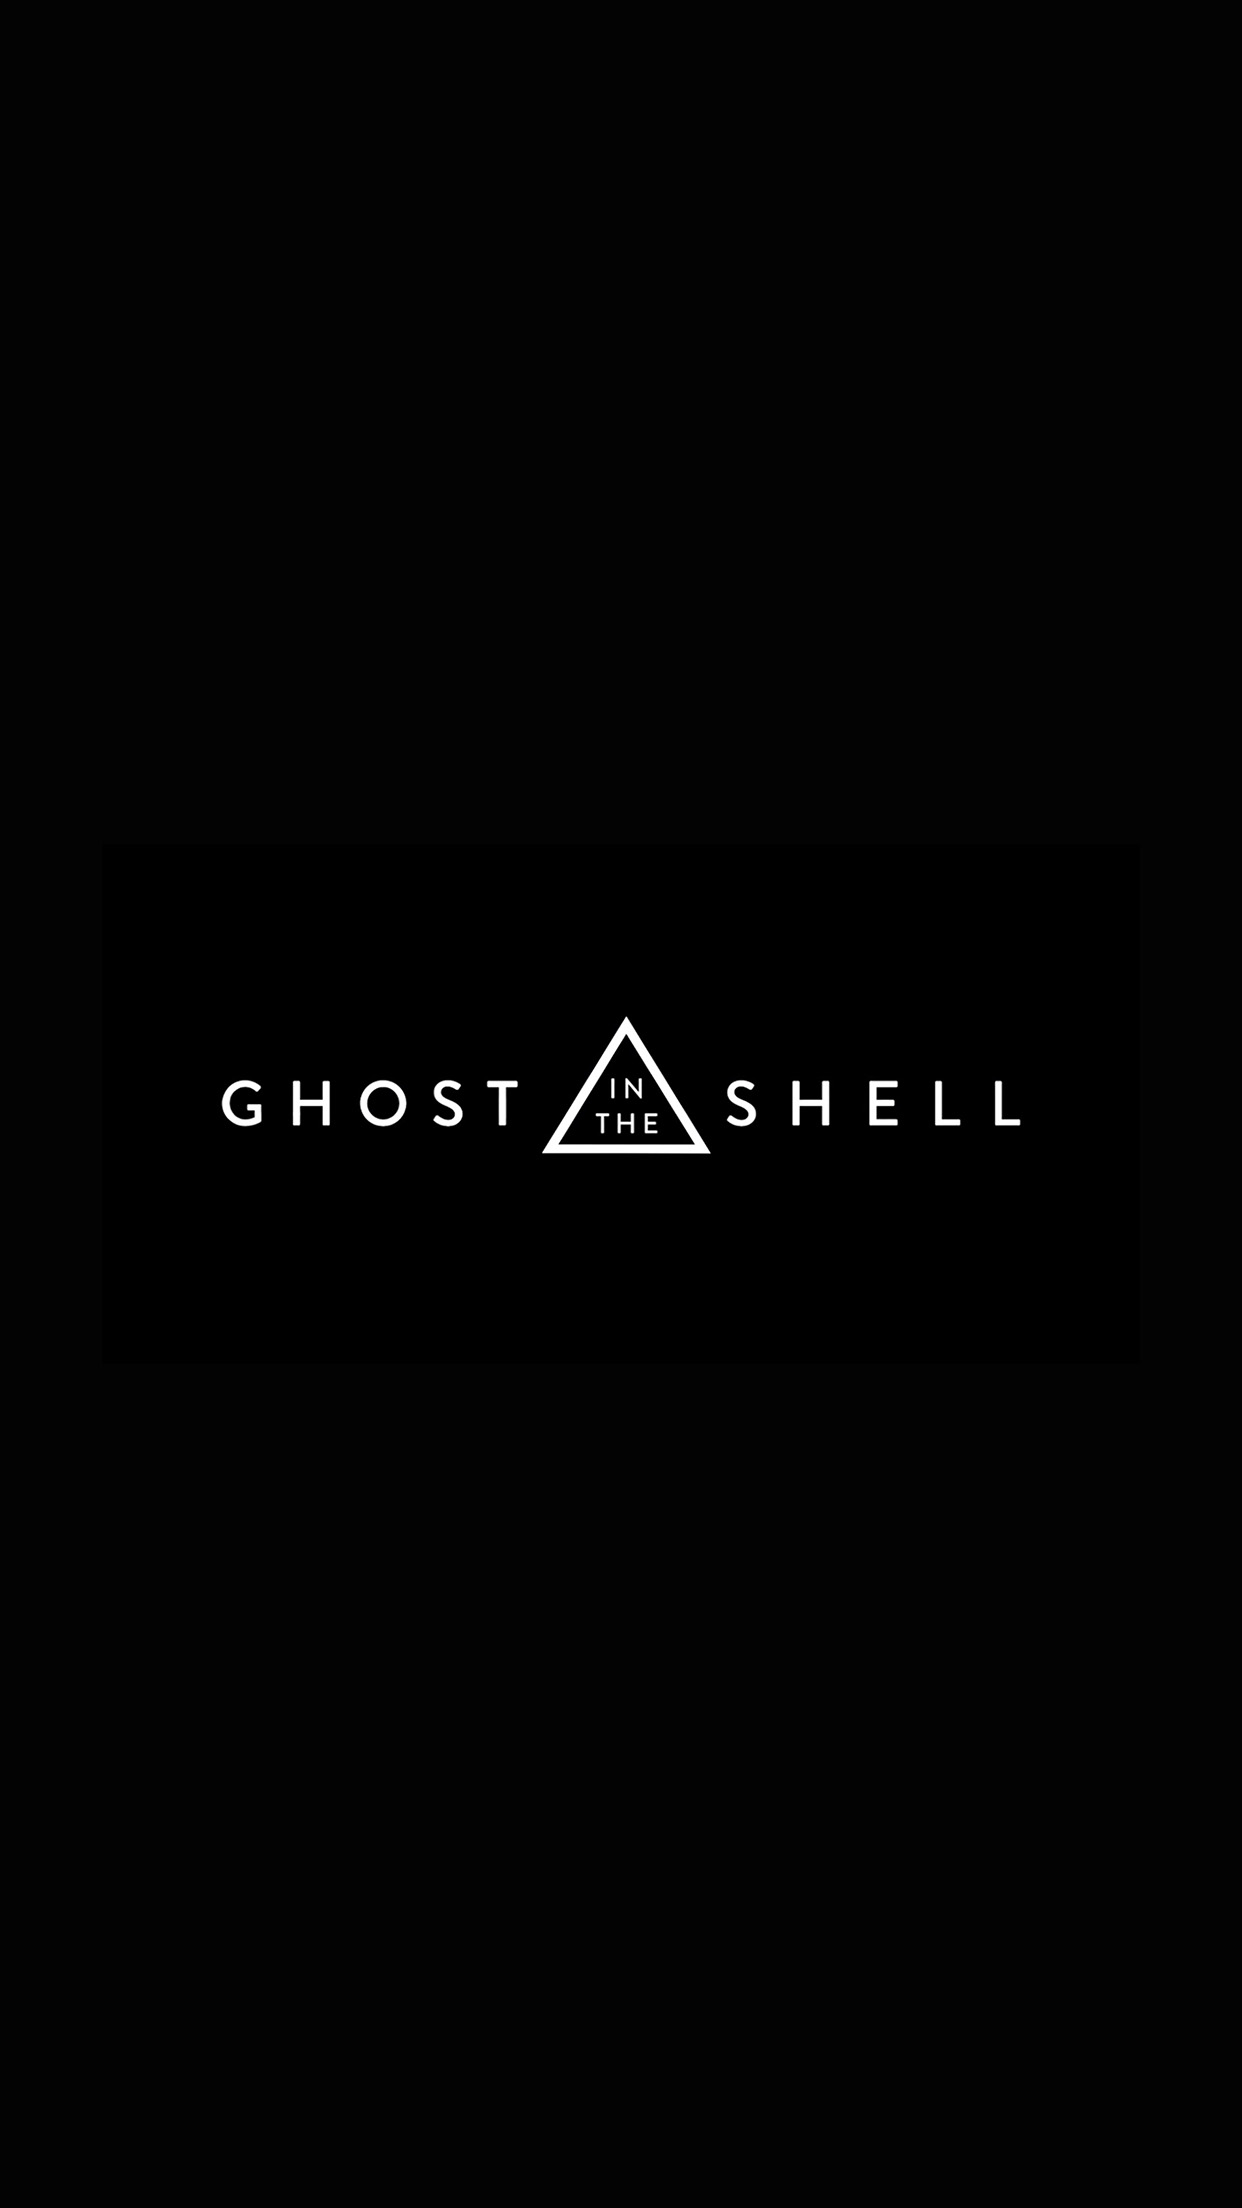 iphone7papers | iphone7 wallpaper | av32-ghost-in-the-shell-dark